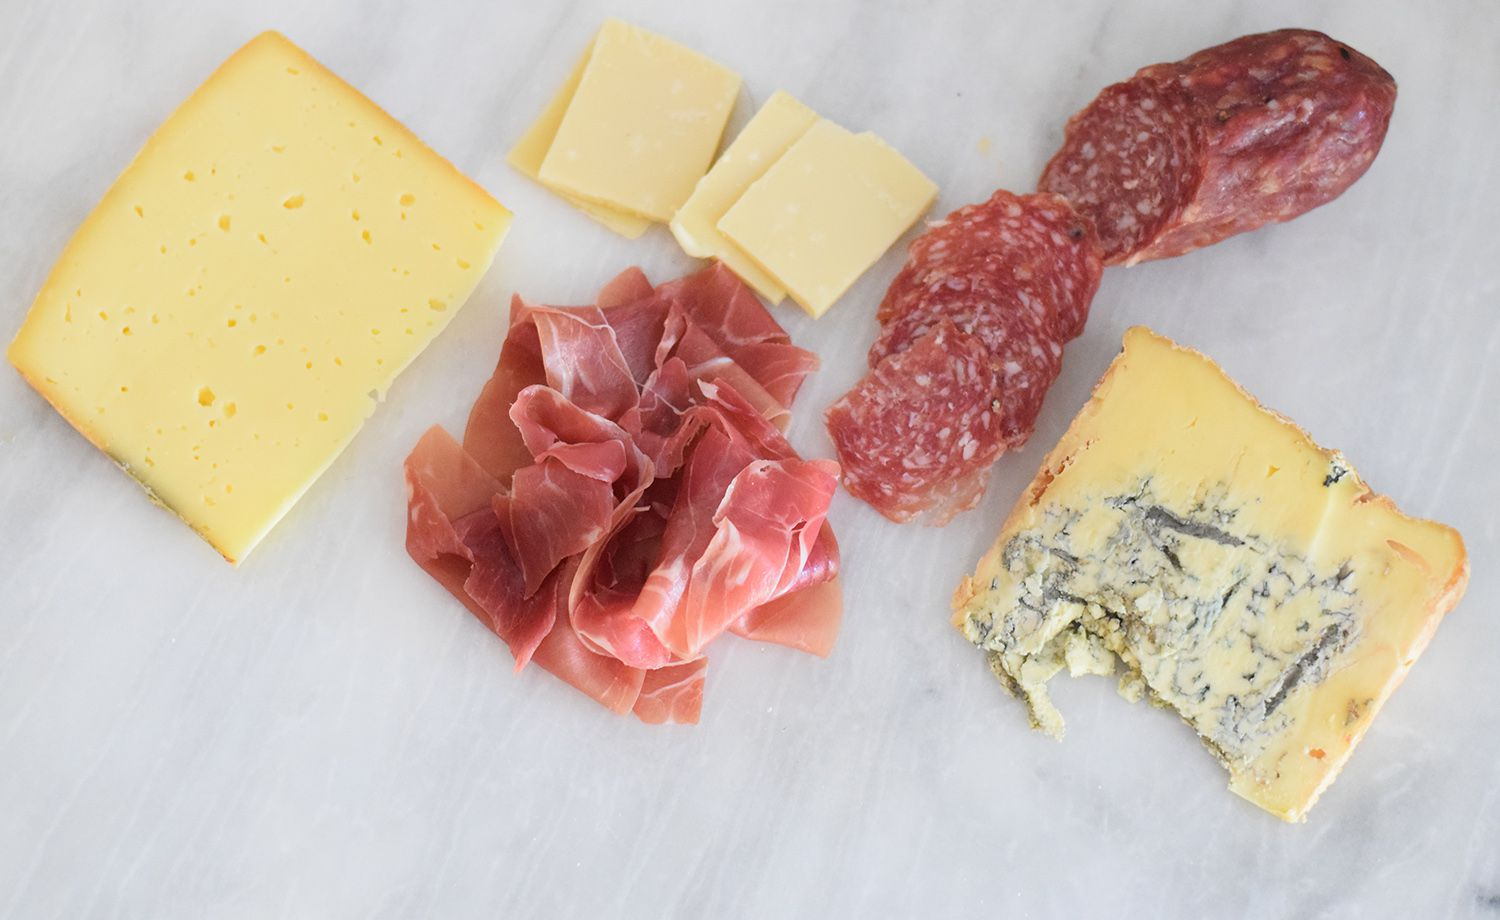 Various meats and cheeses